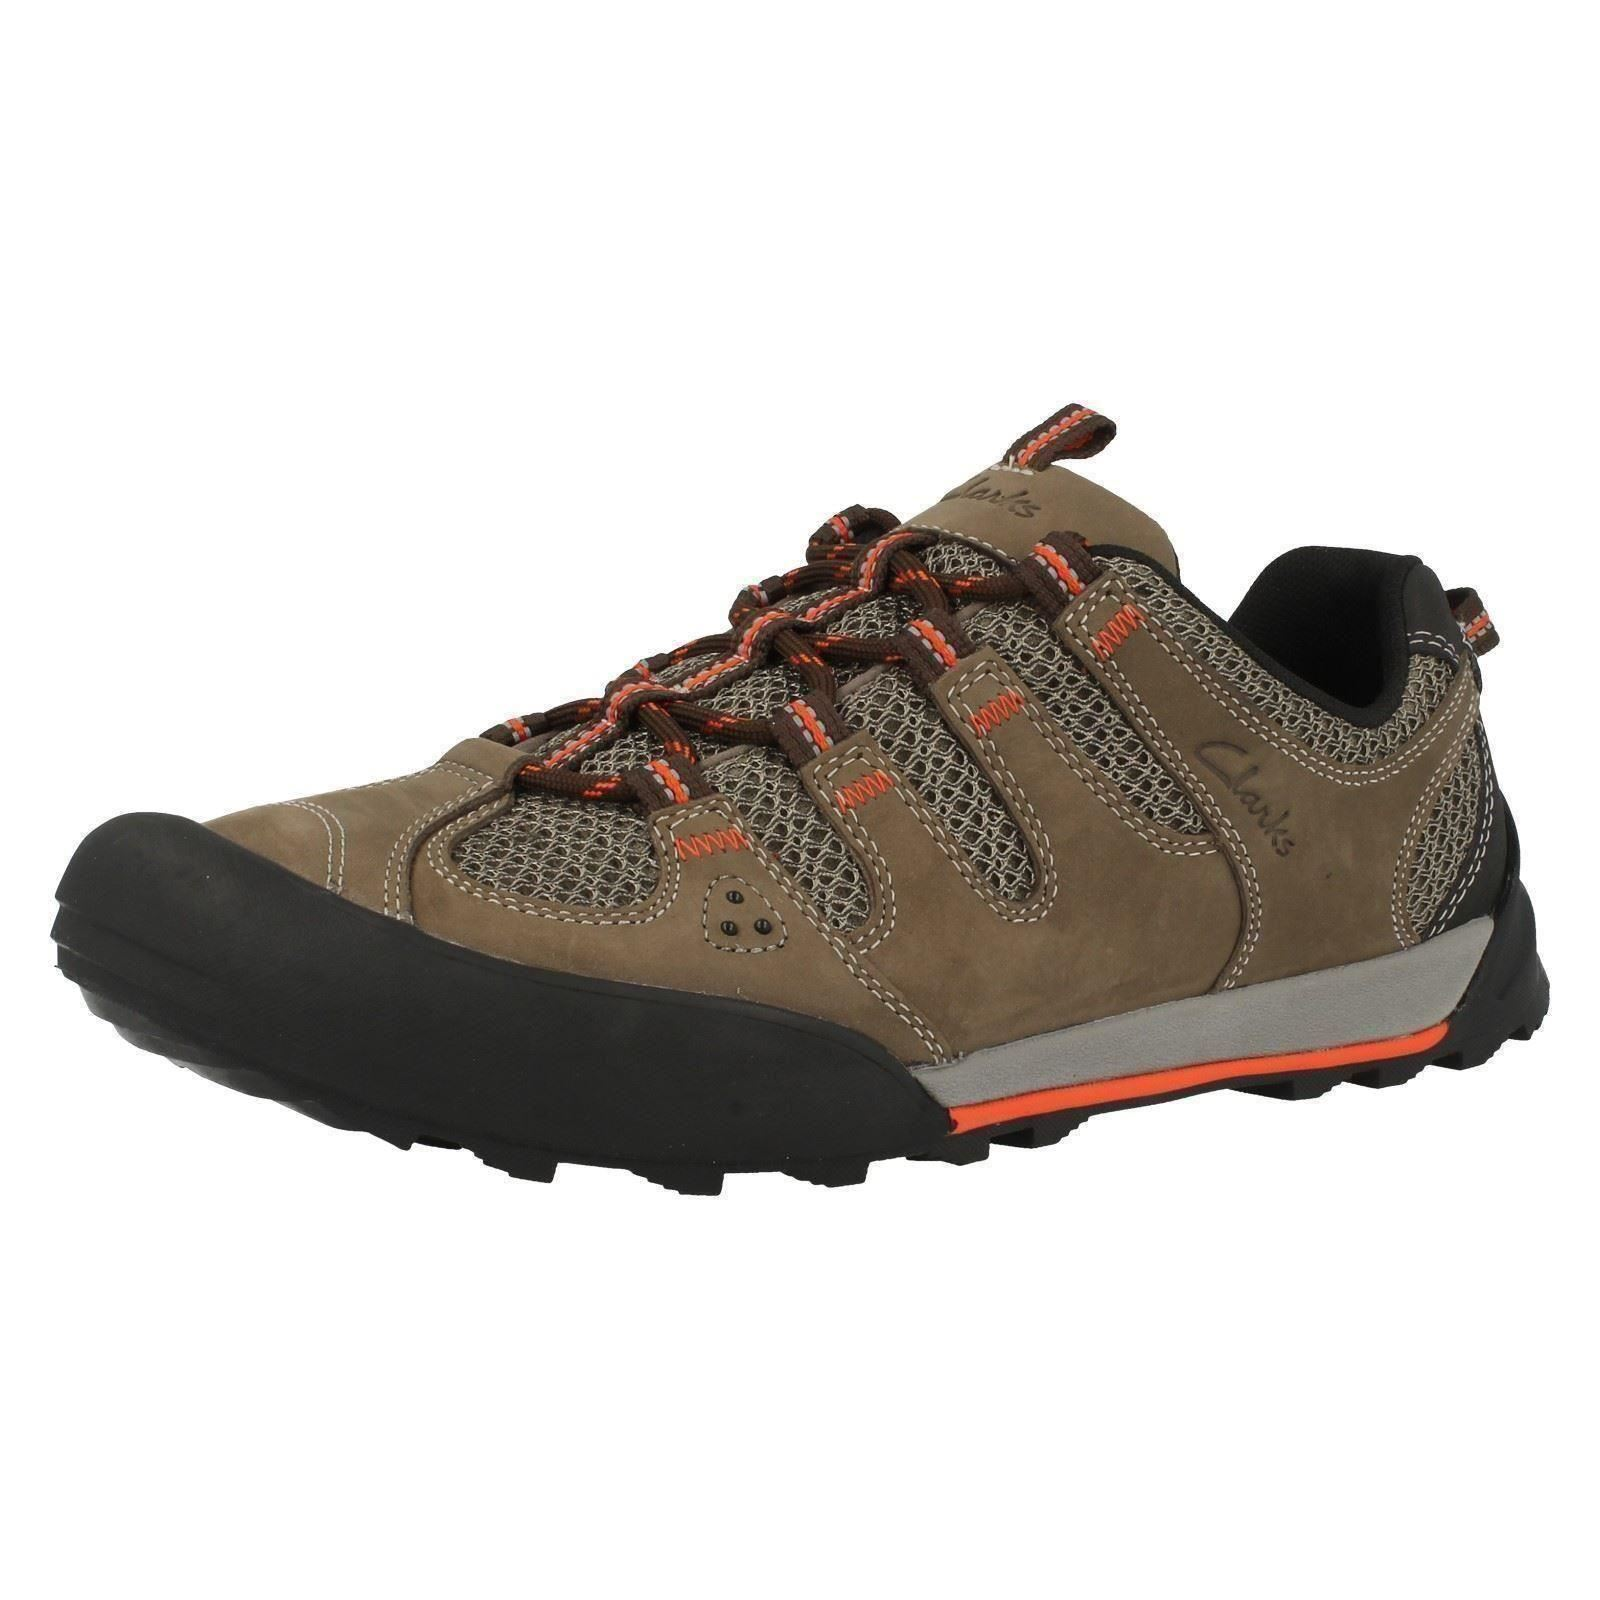 Mens Clarks Bctive Wear Trainers Outlay Compass